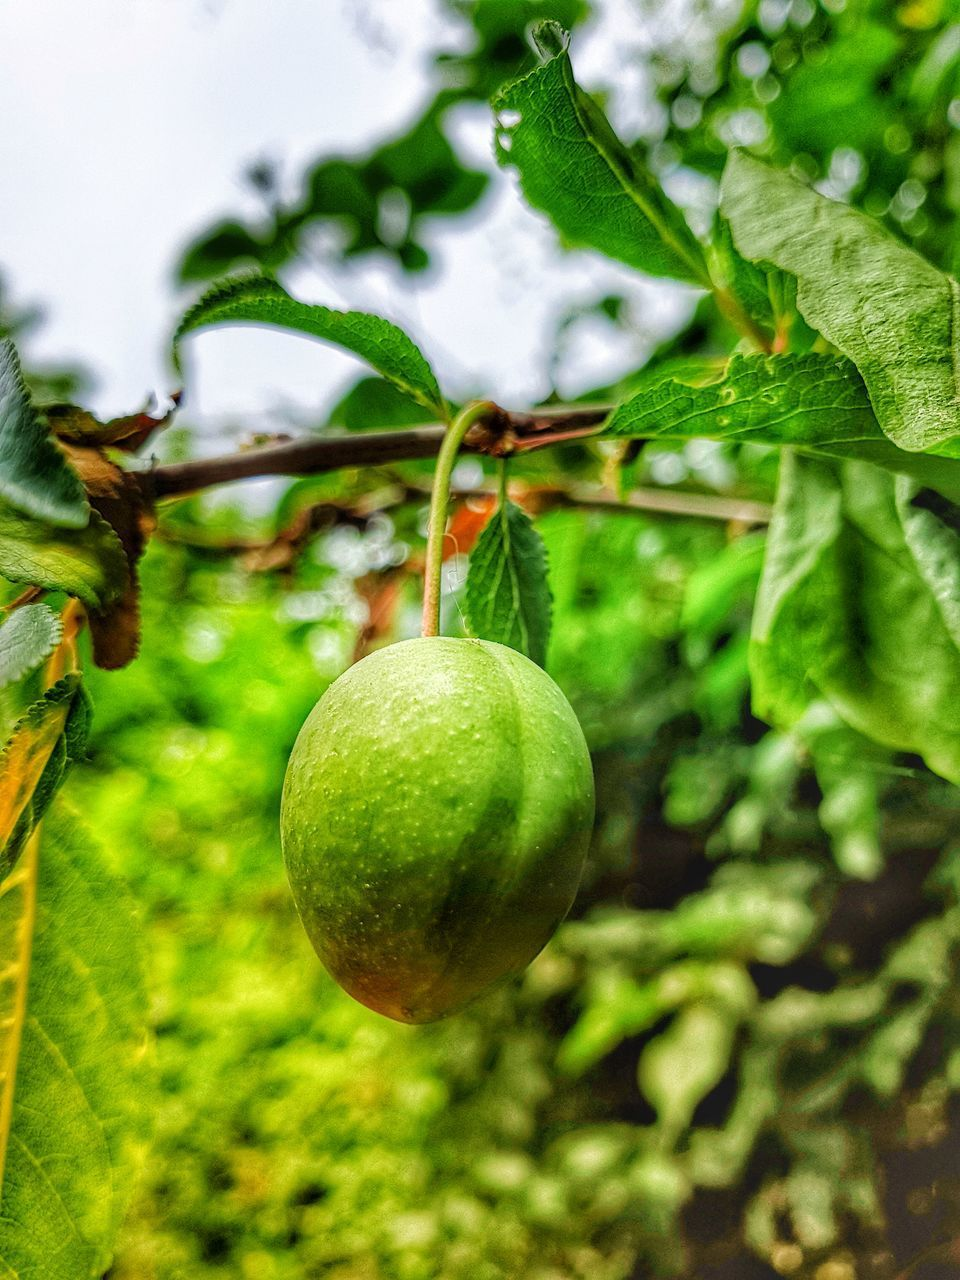 food, food and drink, fruit, healthy eating, freshness, green color, plant, growth, leaf, plant part, wellbeing, focus on foreground, close-up, no people, nature, tree, day, vegetable, outdoors, tomato, ripe, passion fruit